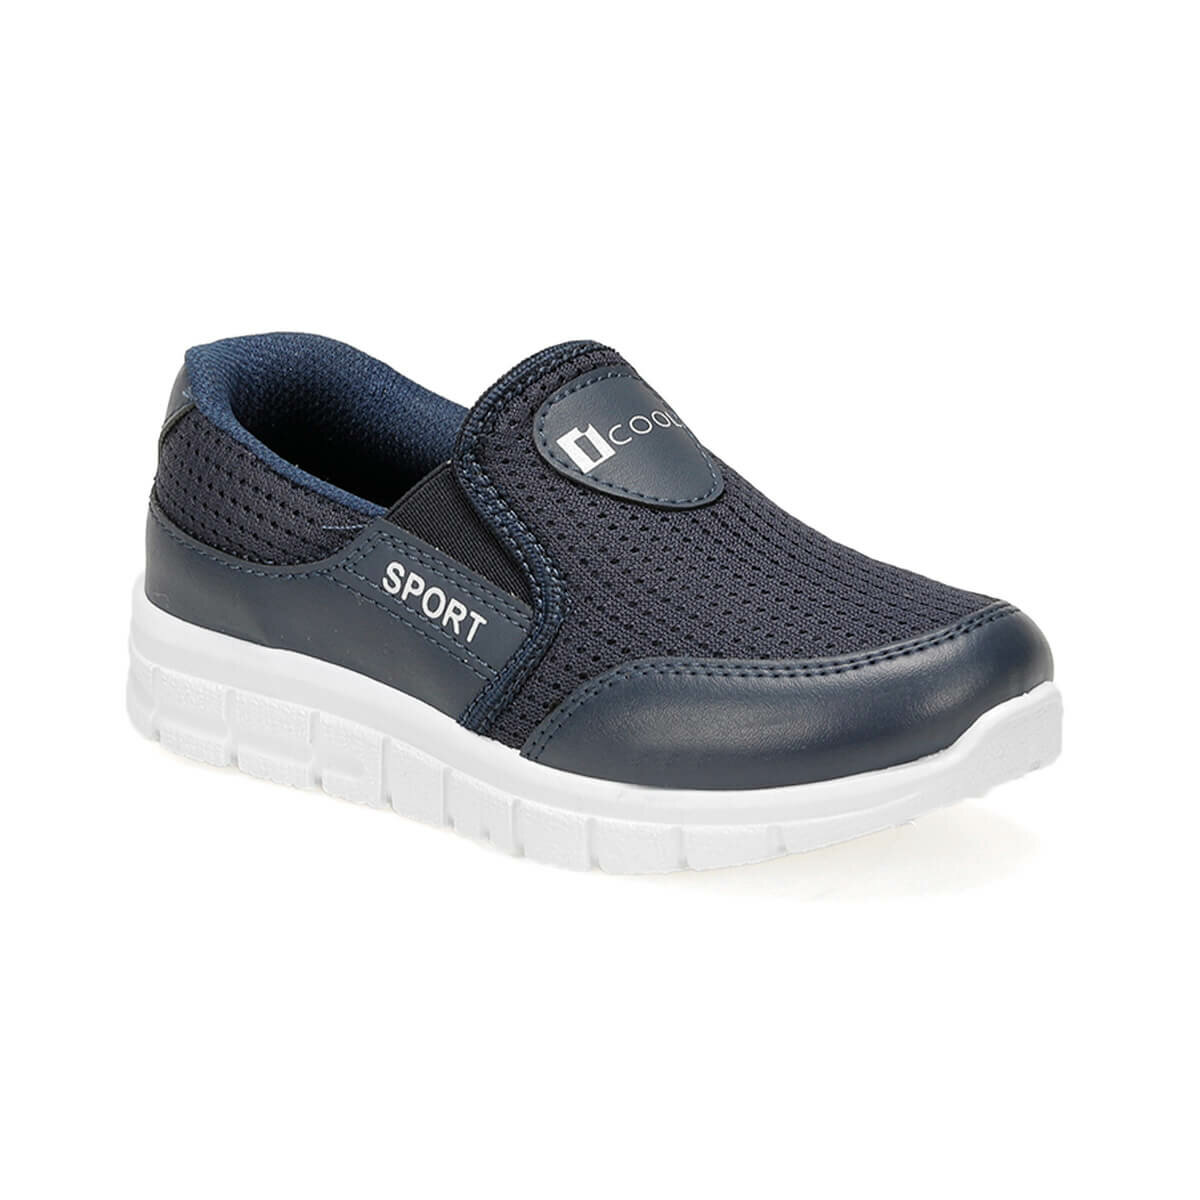 FLO BLUE Navy BLUE Male Child Hiking Shoes I-Cool